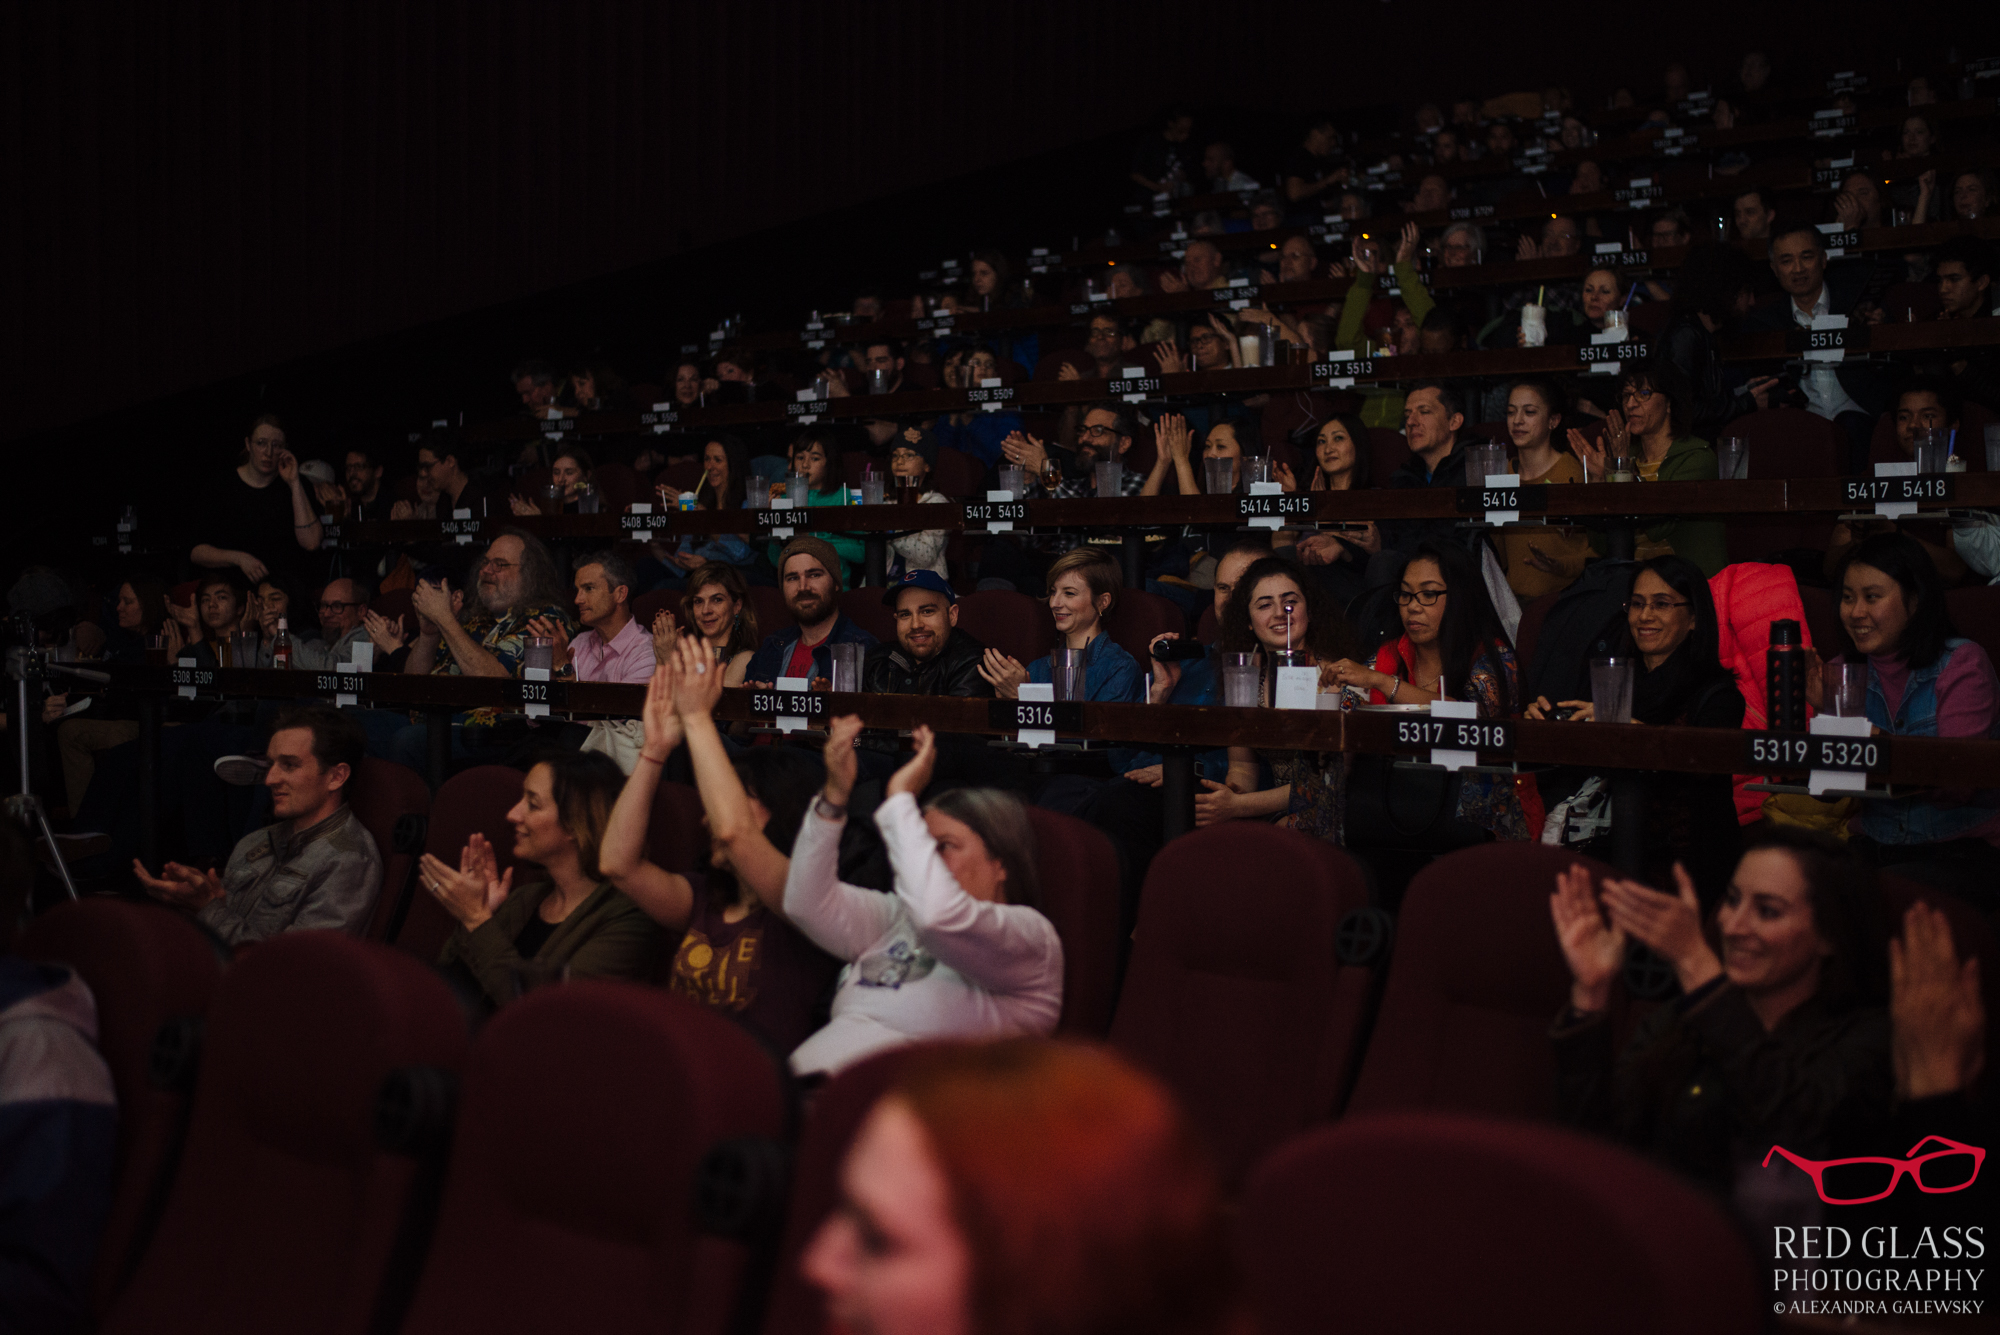 Audience in a theater clapping and watching a performance.